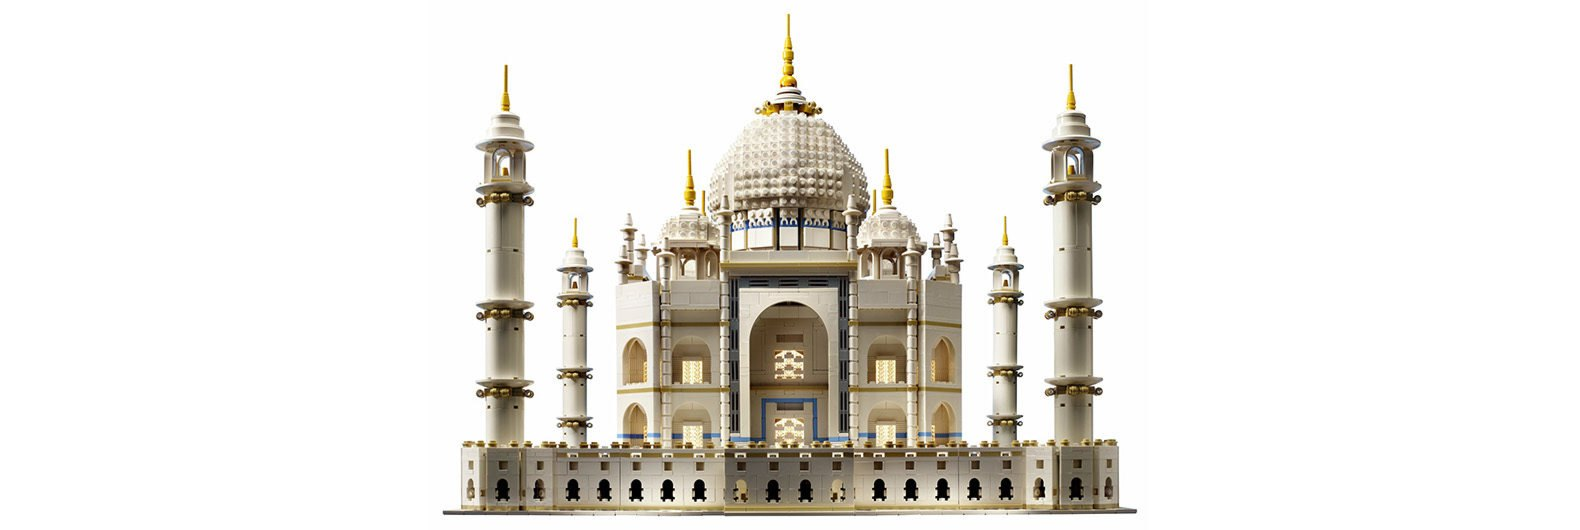 Great LEGO Relaunches Its Beloved Taj Mahal Model With Almost 6,000 Bricks Awesome Ideas